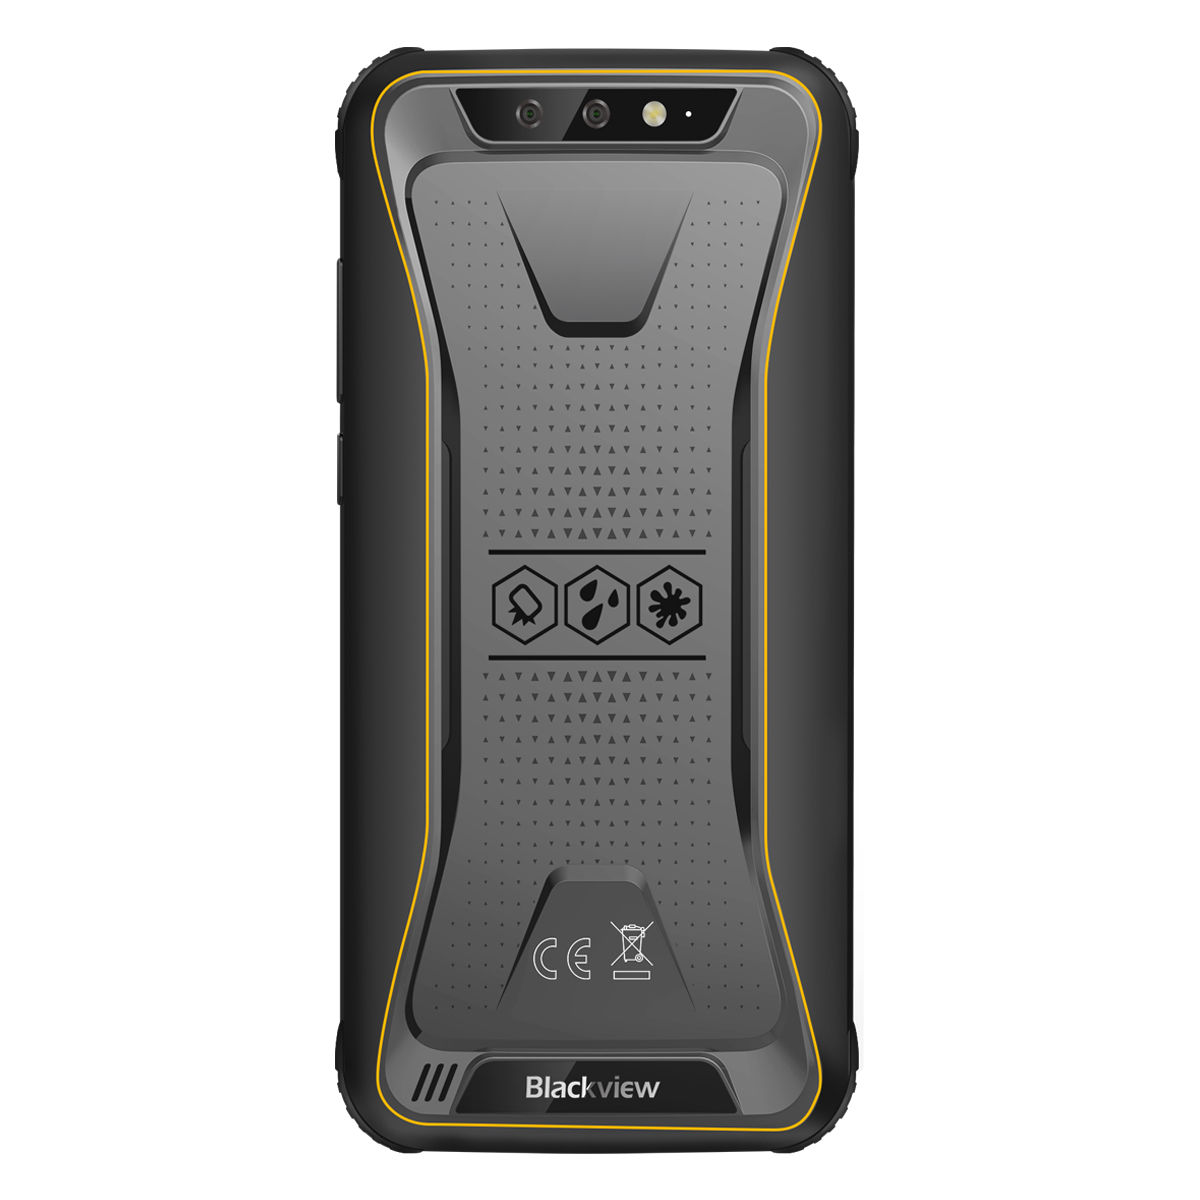 iGET BLACKVIEW GBV5500 Plus Yellow